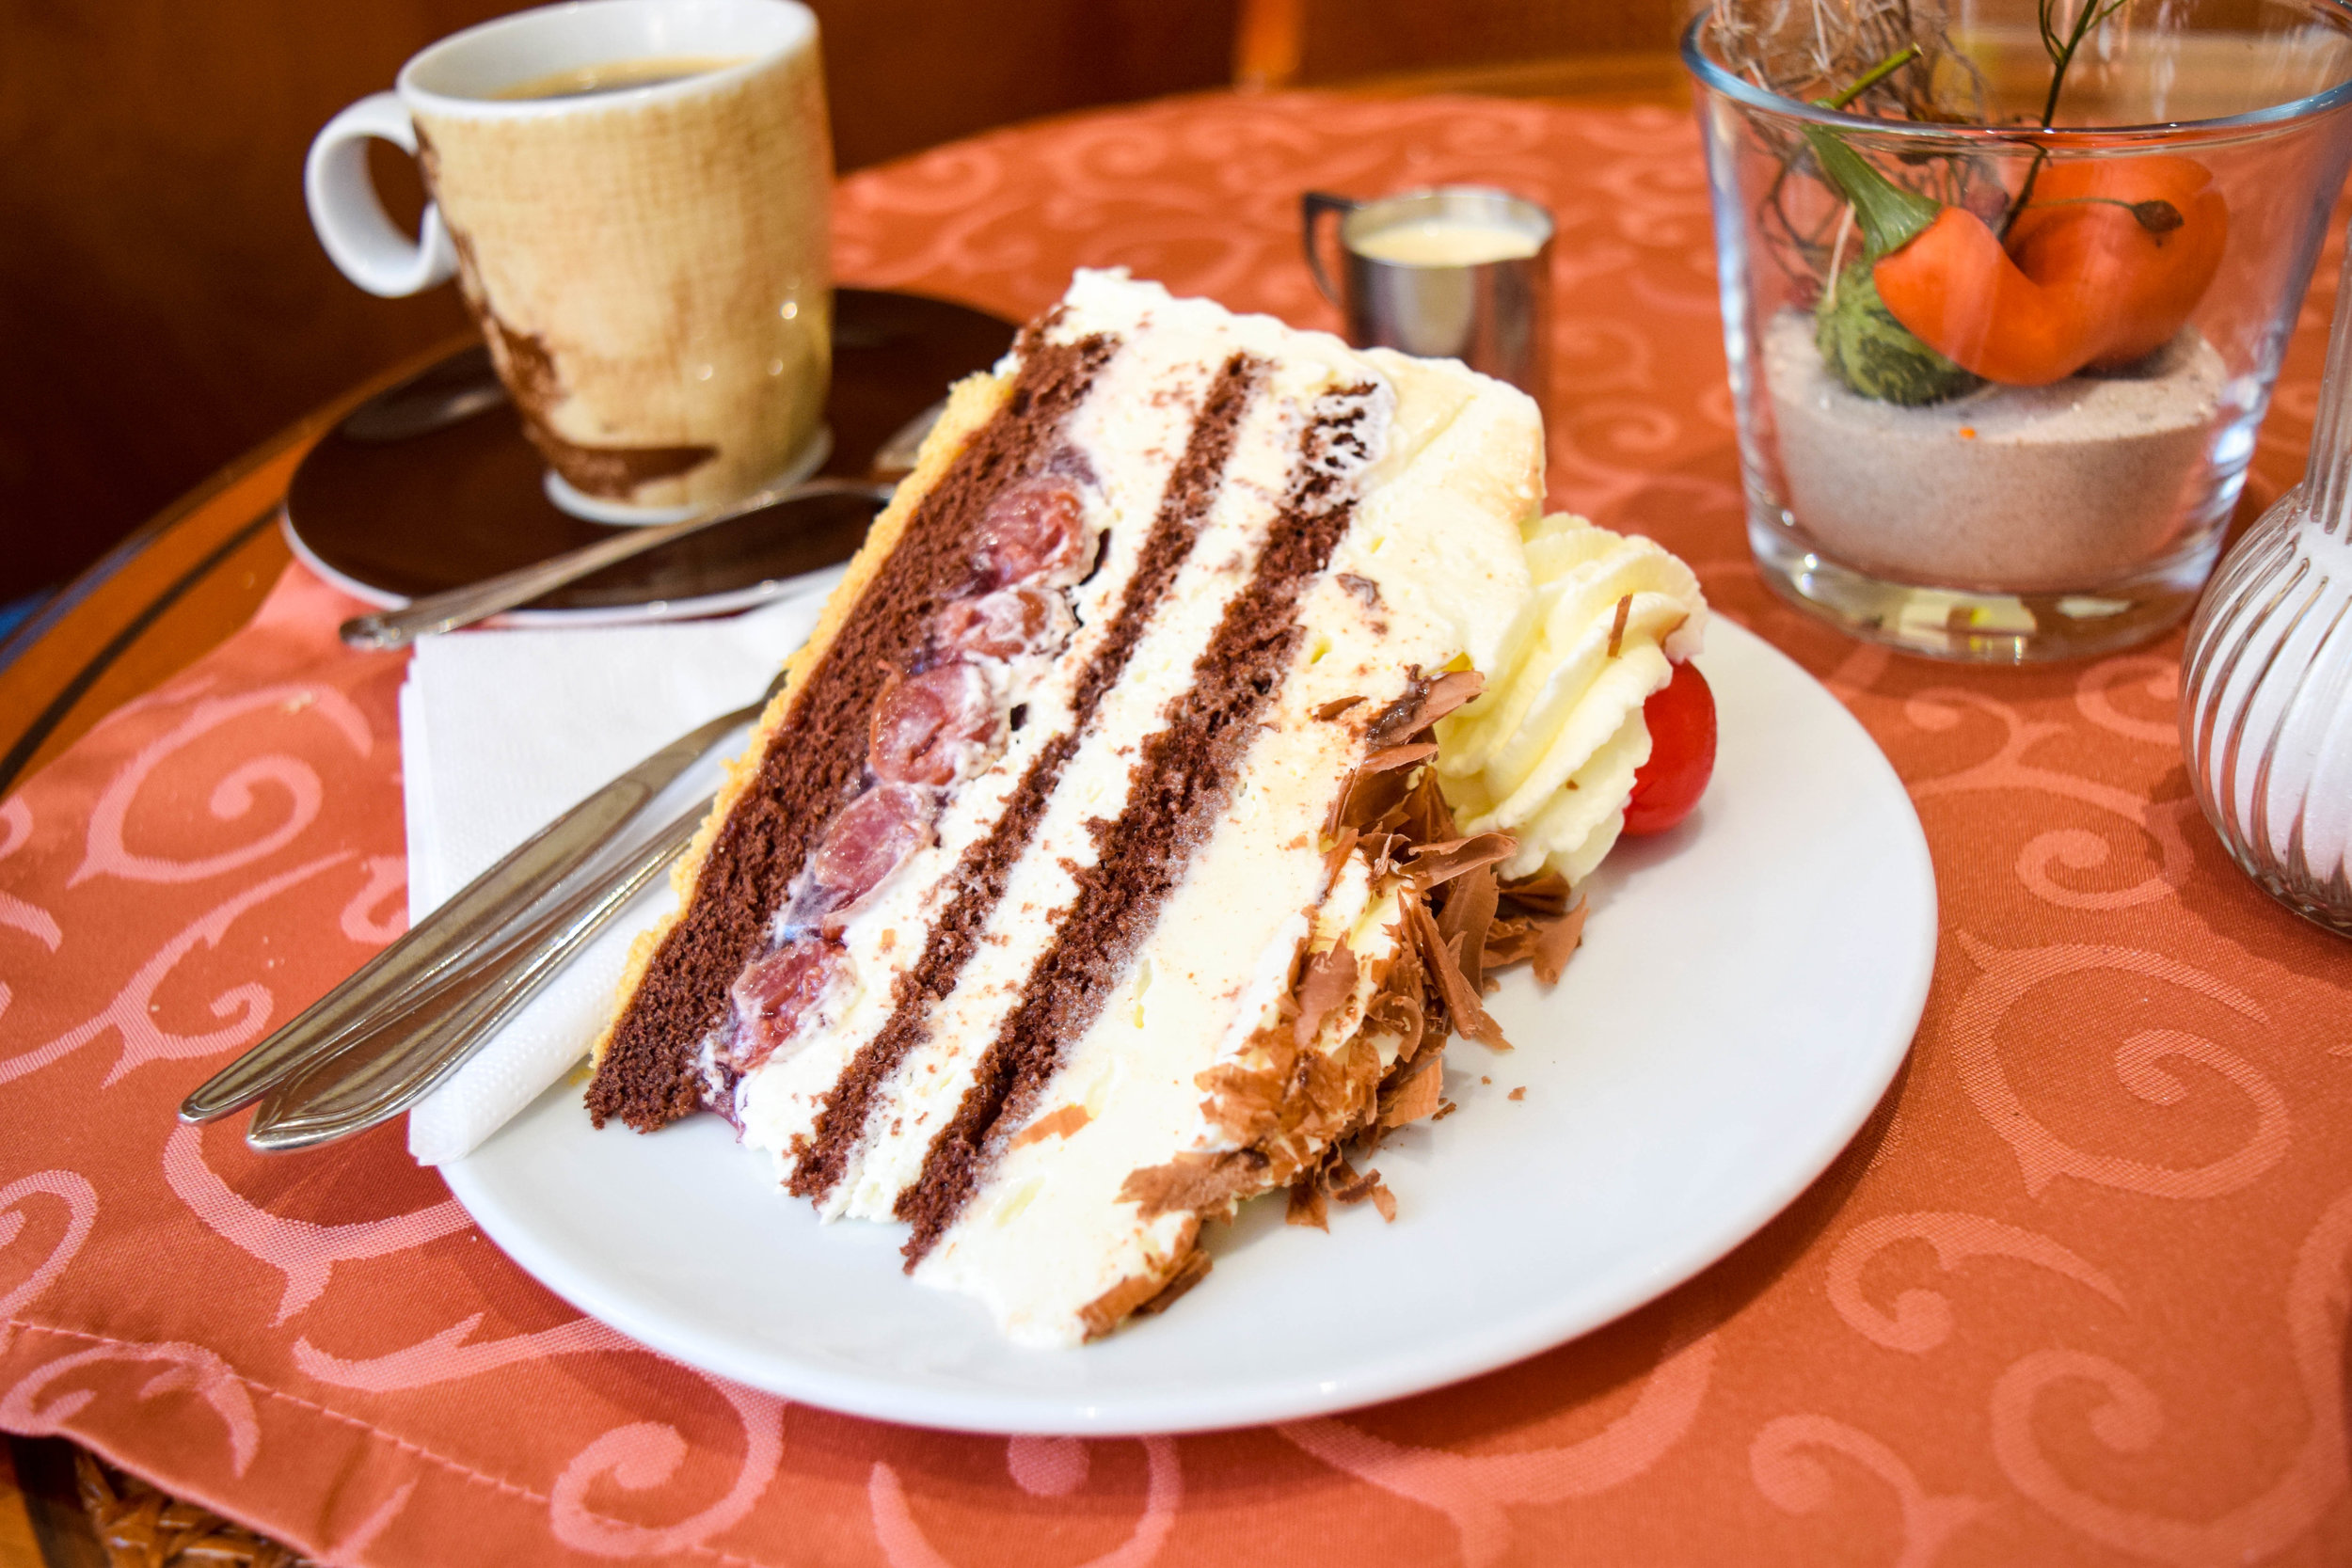 That's the good stuff: Black Forest cake.